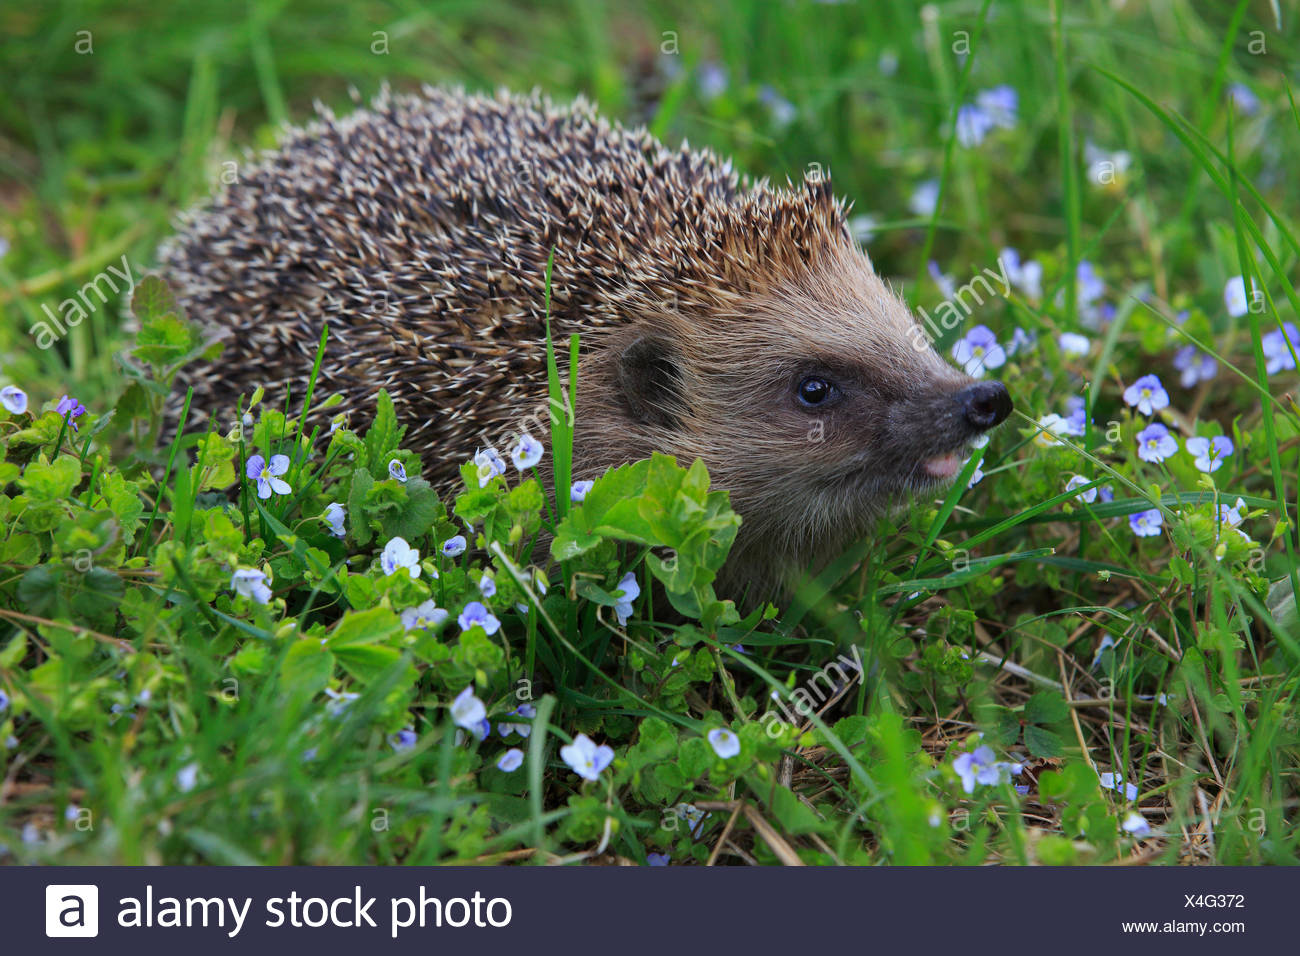 Flower, flowers, common hedgehog, Erinaceus europaeus, European hedgehog, spring, hedgehog, insectivore, Switzerland, stings, pr - Stock Image